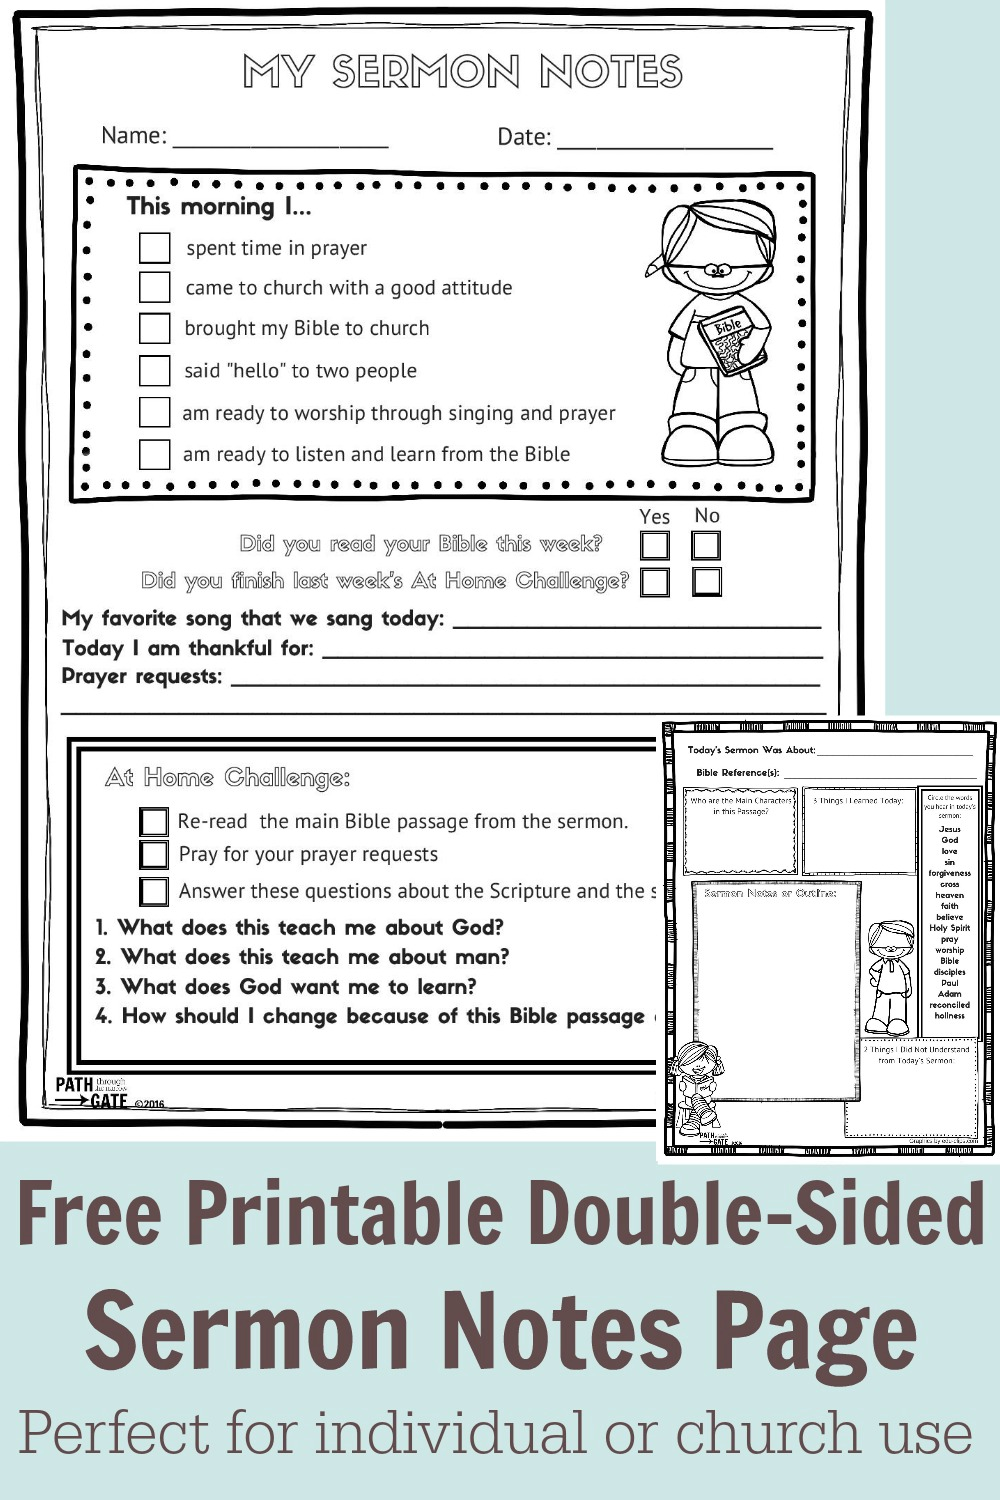 These free printable sermon notes pages include a Sunday morning checklist, space for sermon notes and application, and a take-home challenge.|Path Through the Narrow Gate